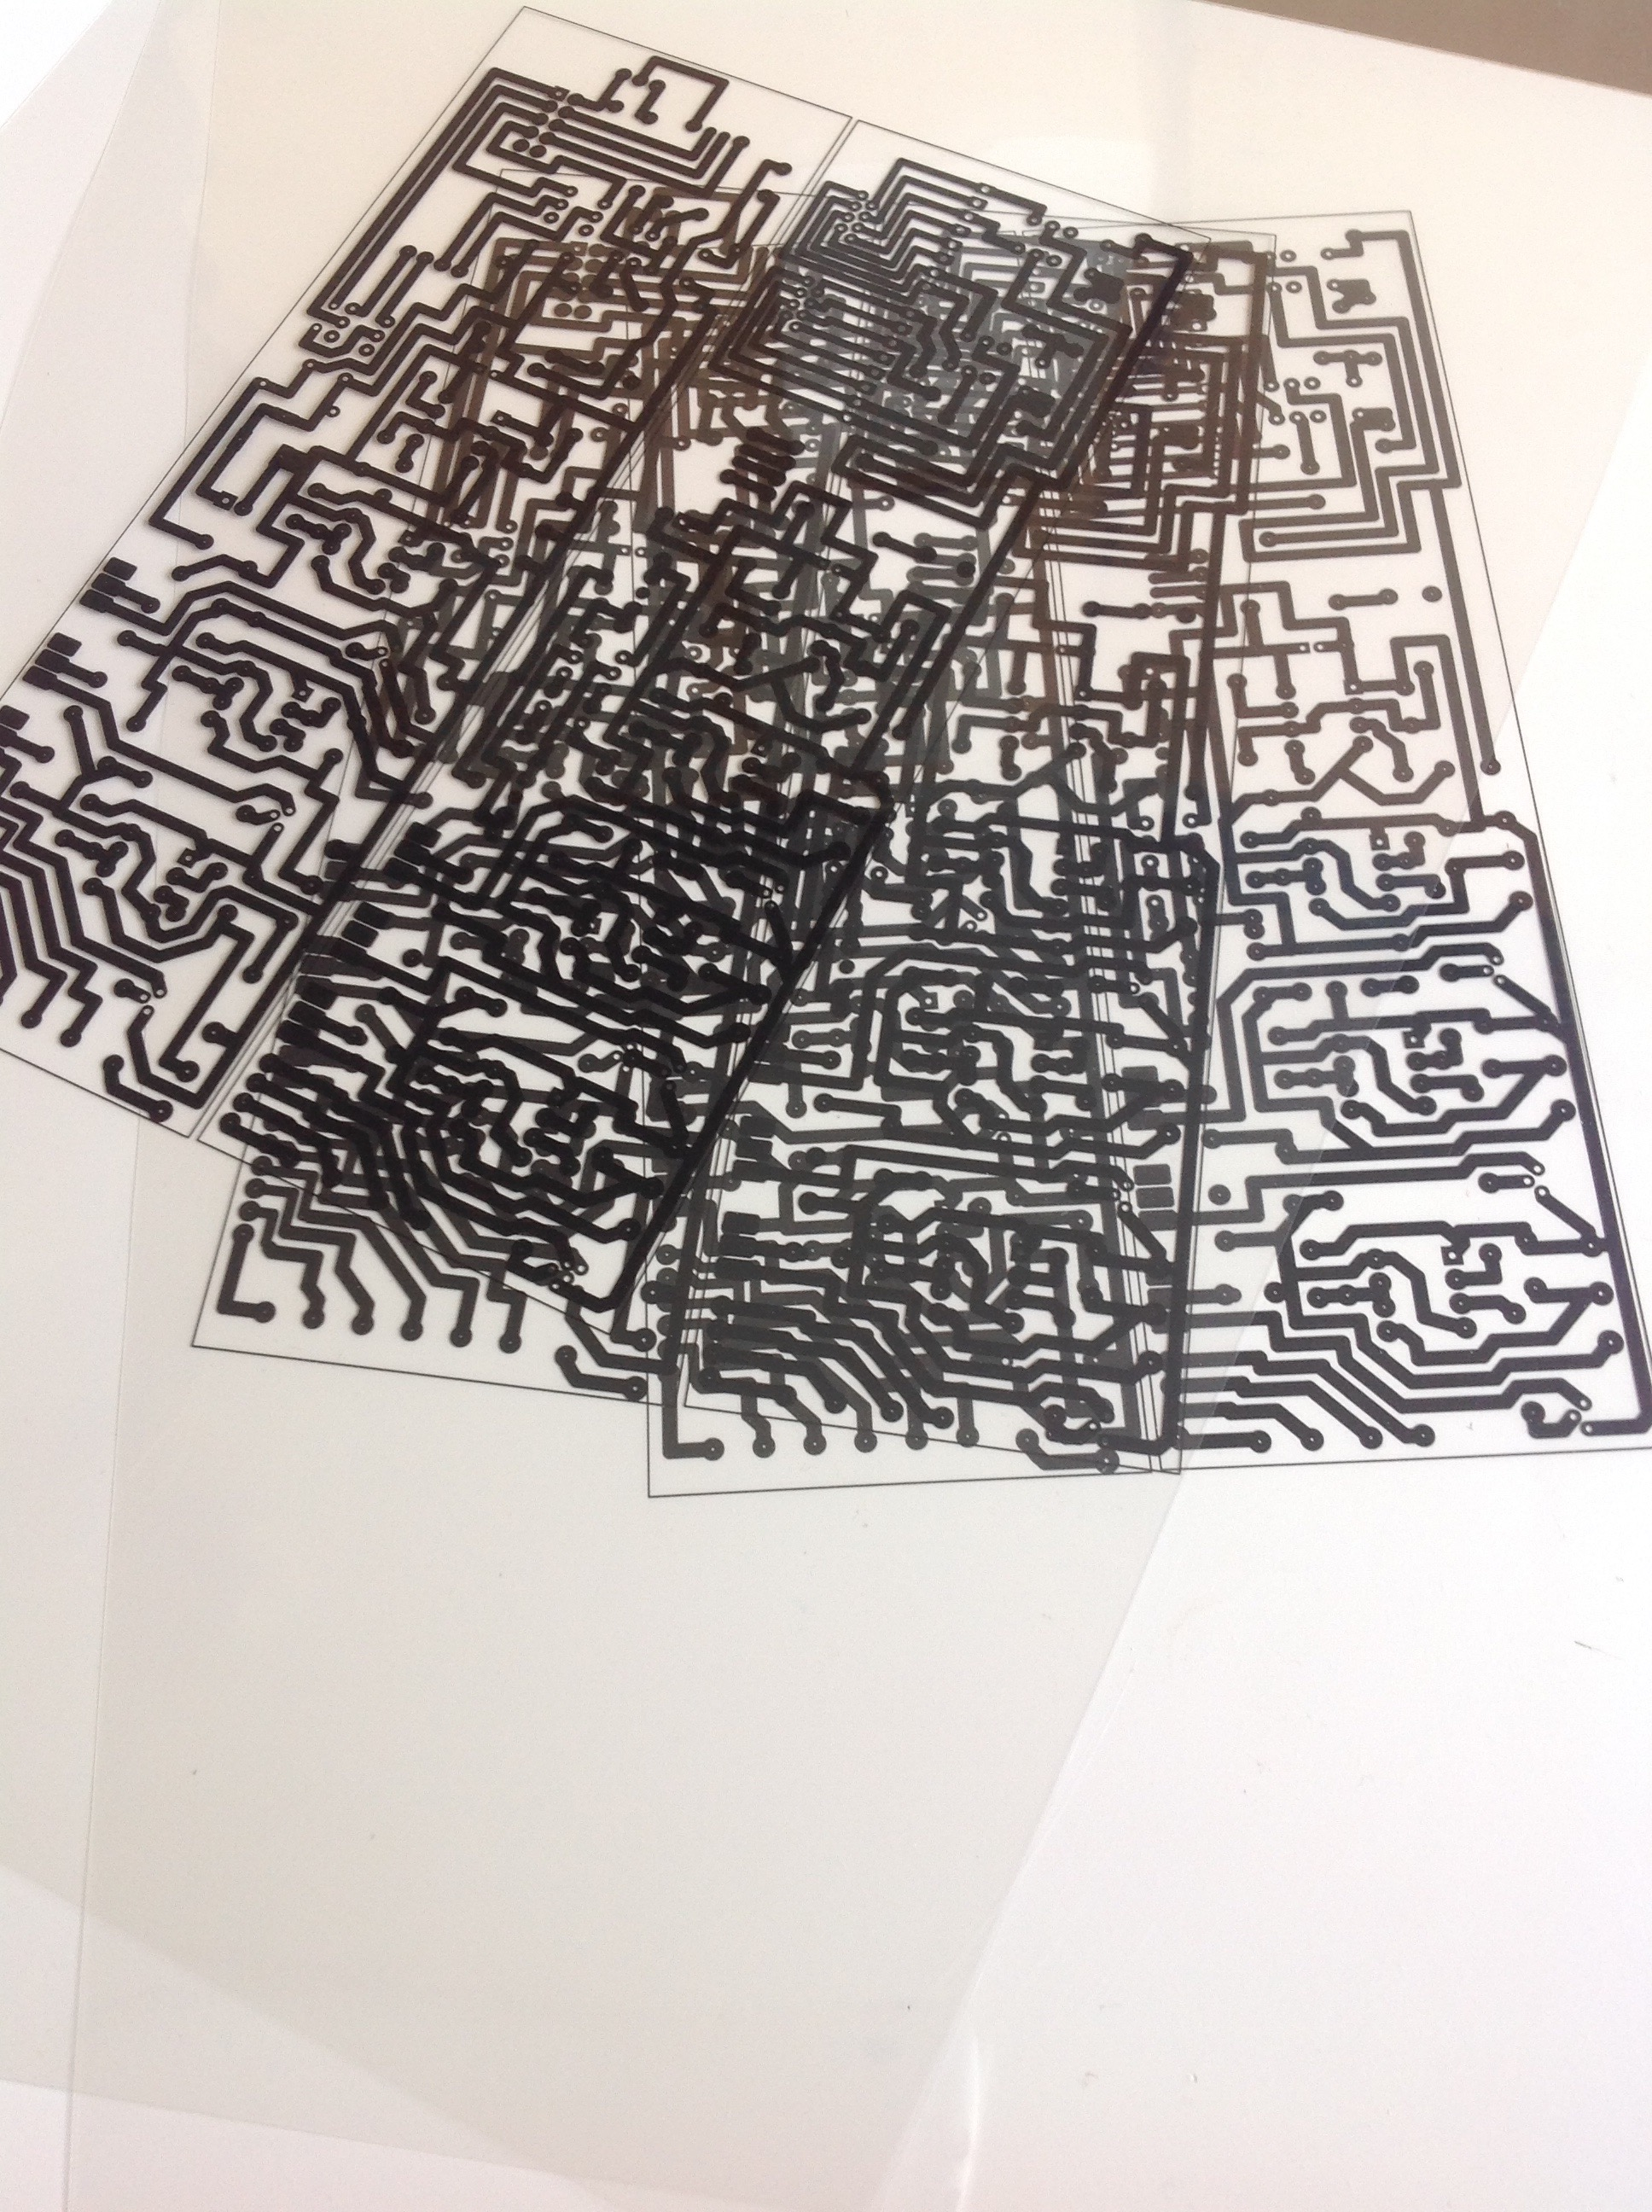 Picture of Printing the Artwork